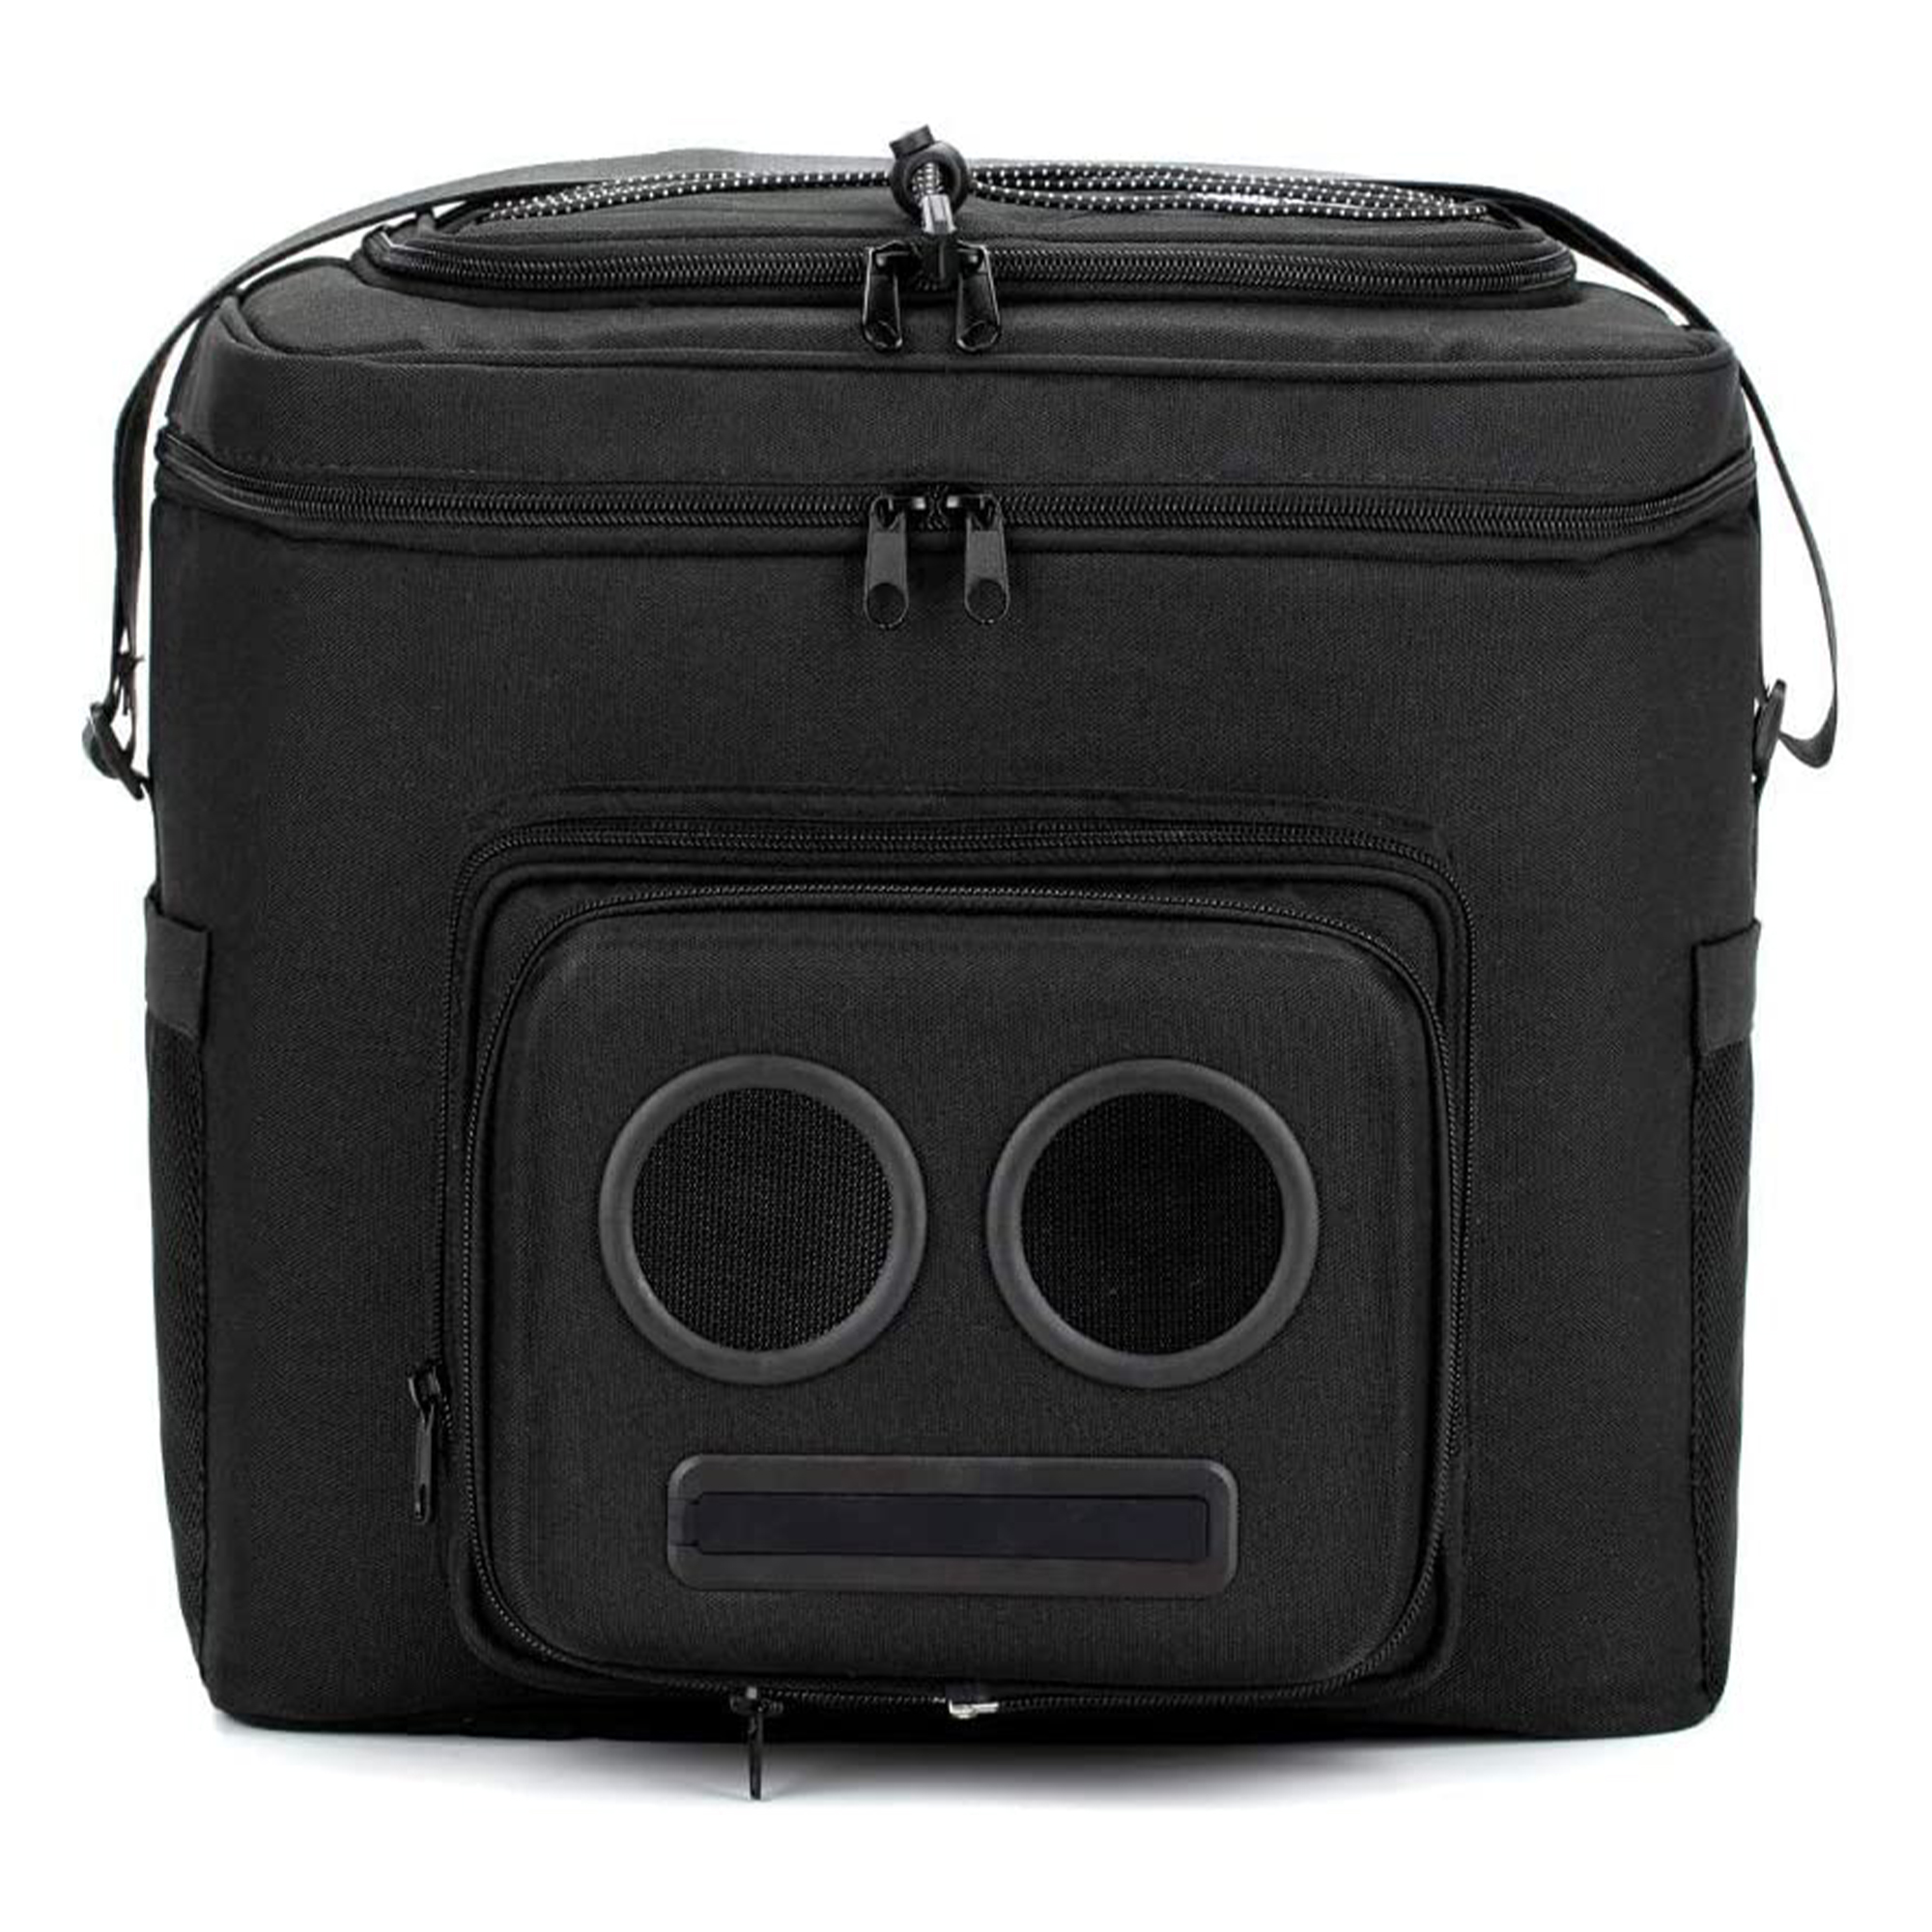 he #1 Cooler with Speakers on Amazon. 20-Watt Bluetooth Speakers & Subwoofer for Parties/Festivals/Boat/Beach. Rechargeable, Works with iPhone & Android (Black, 2020 Edition)